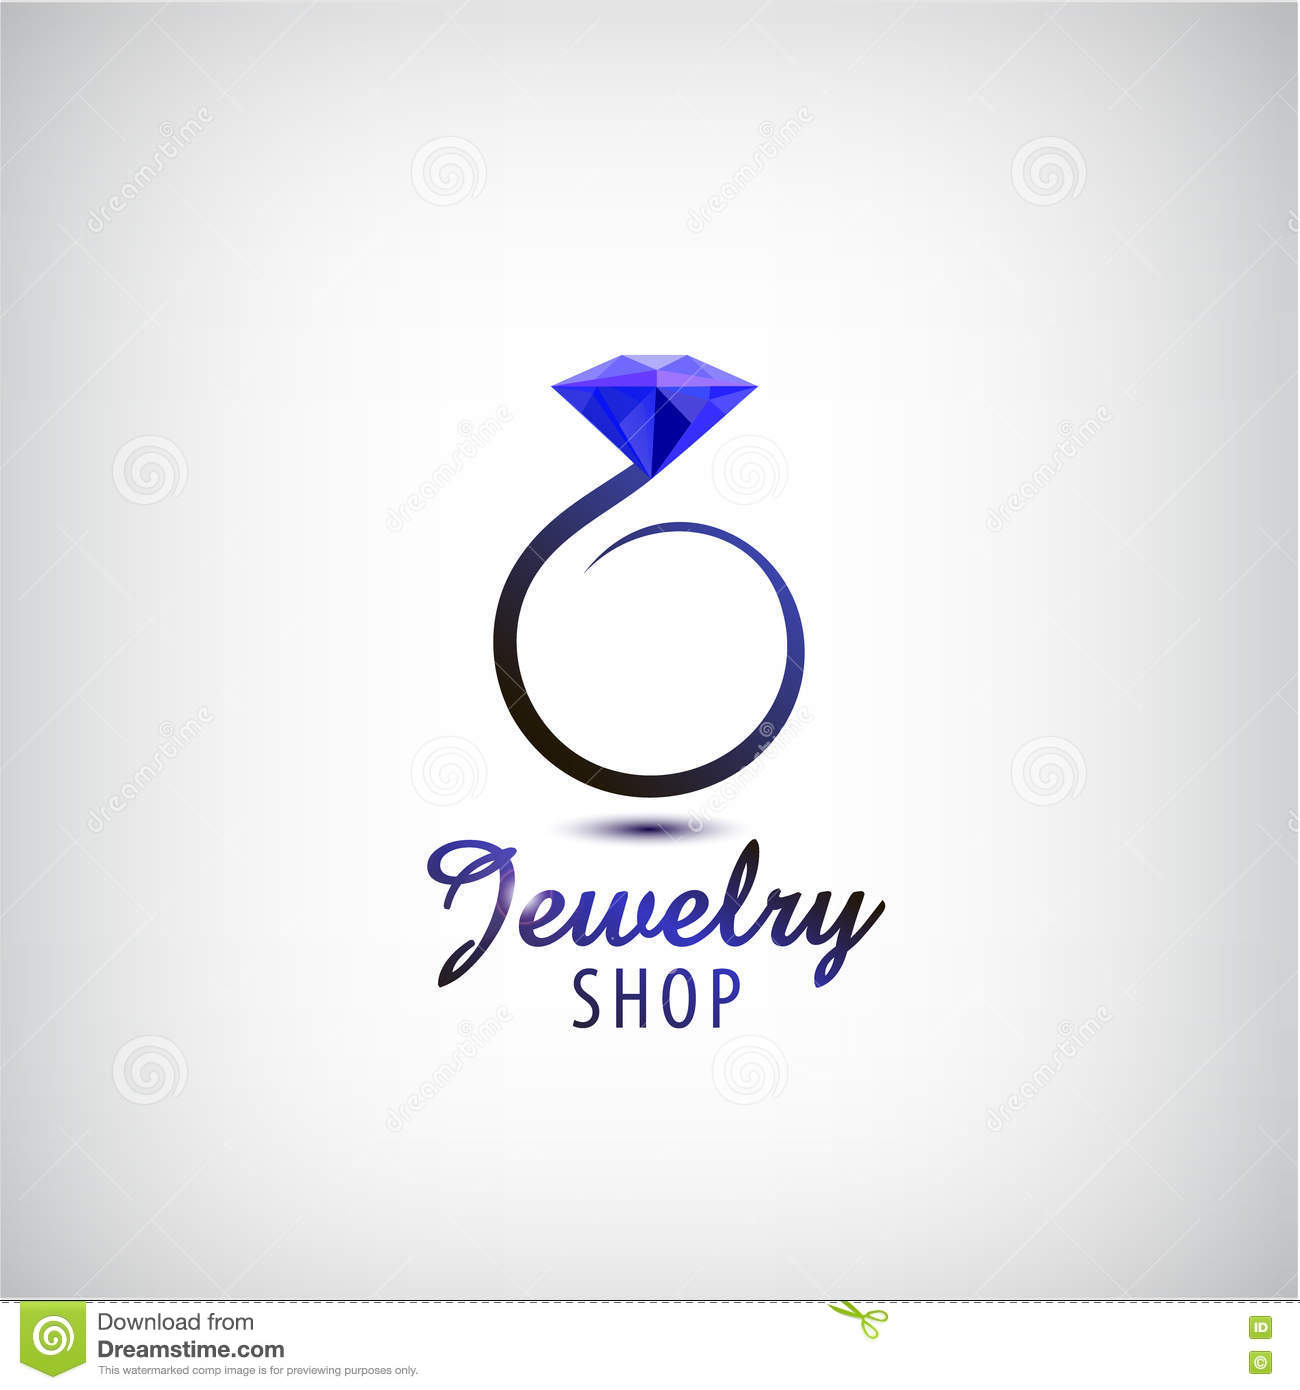 Vector jewelry logo design template. Circle ring with blue stone, crystal.